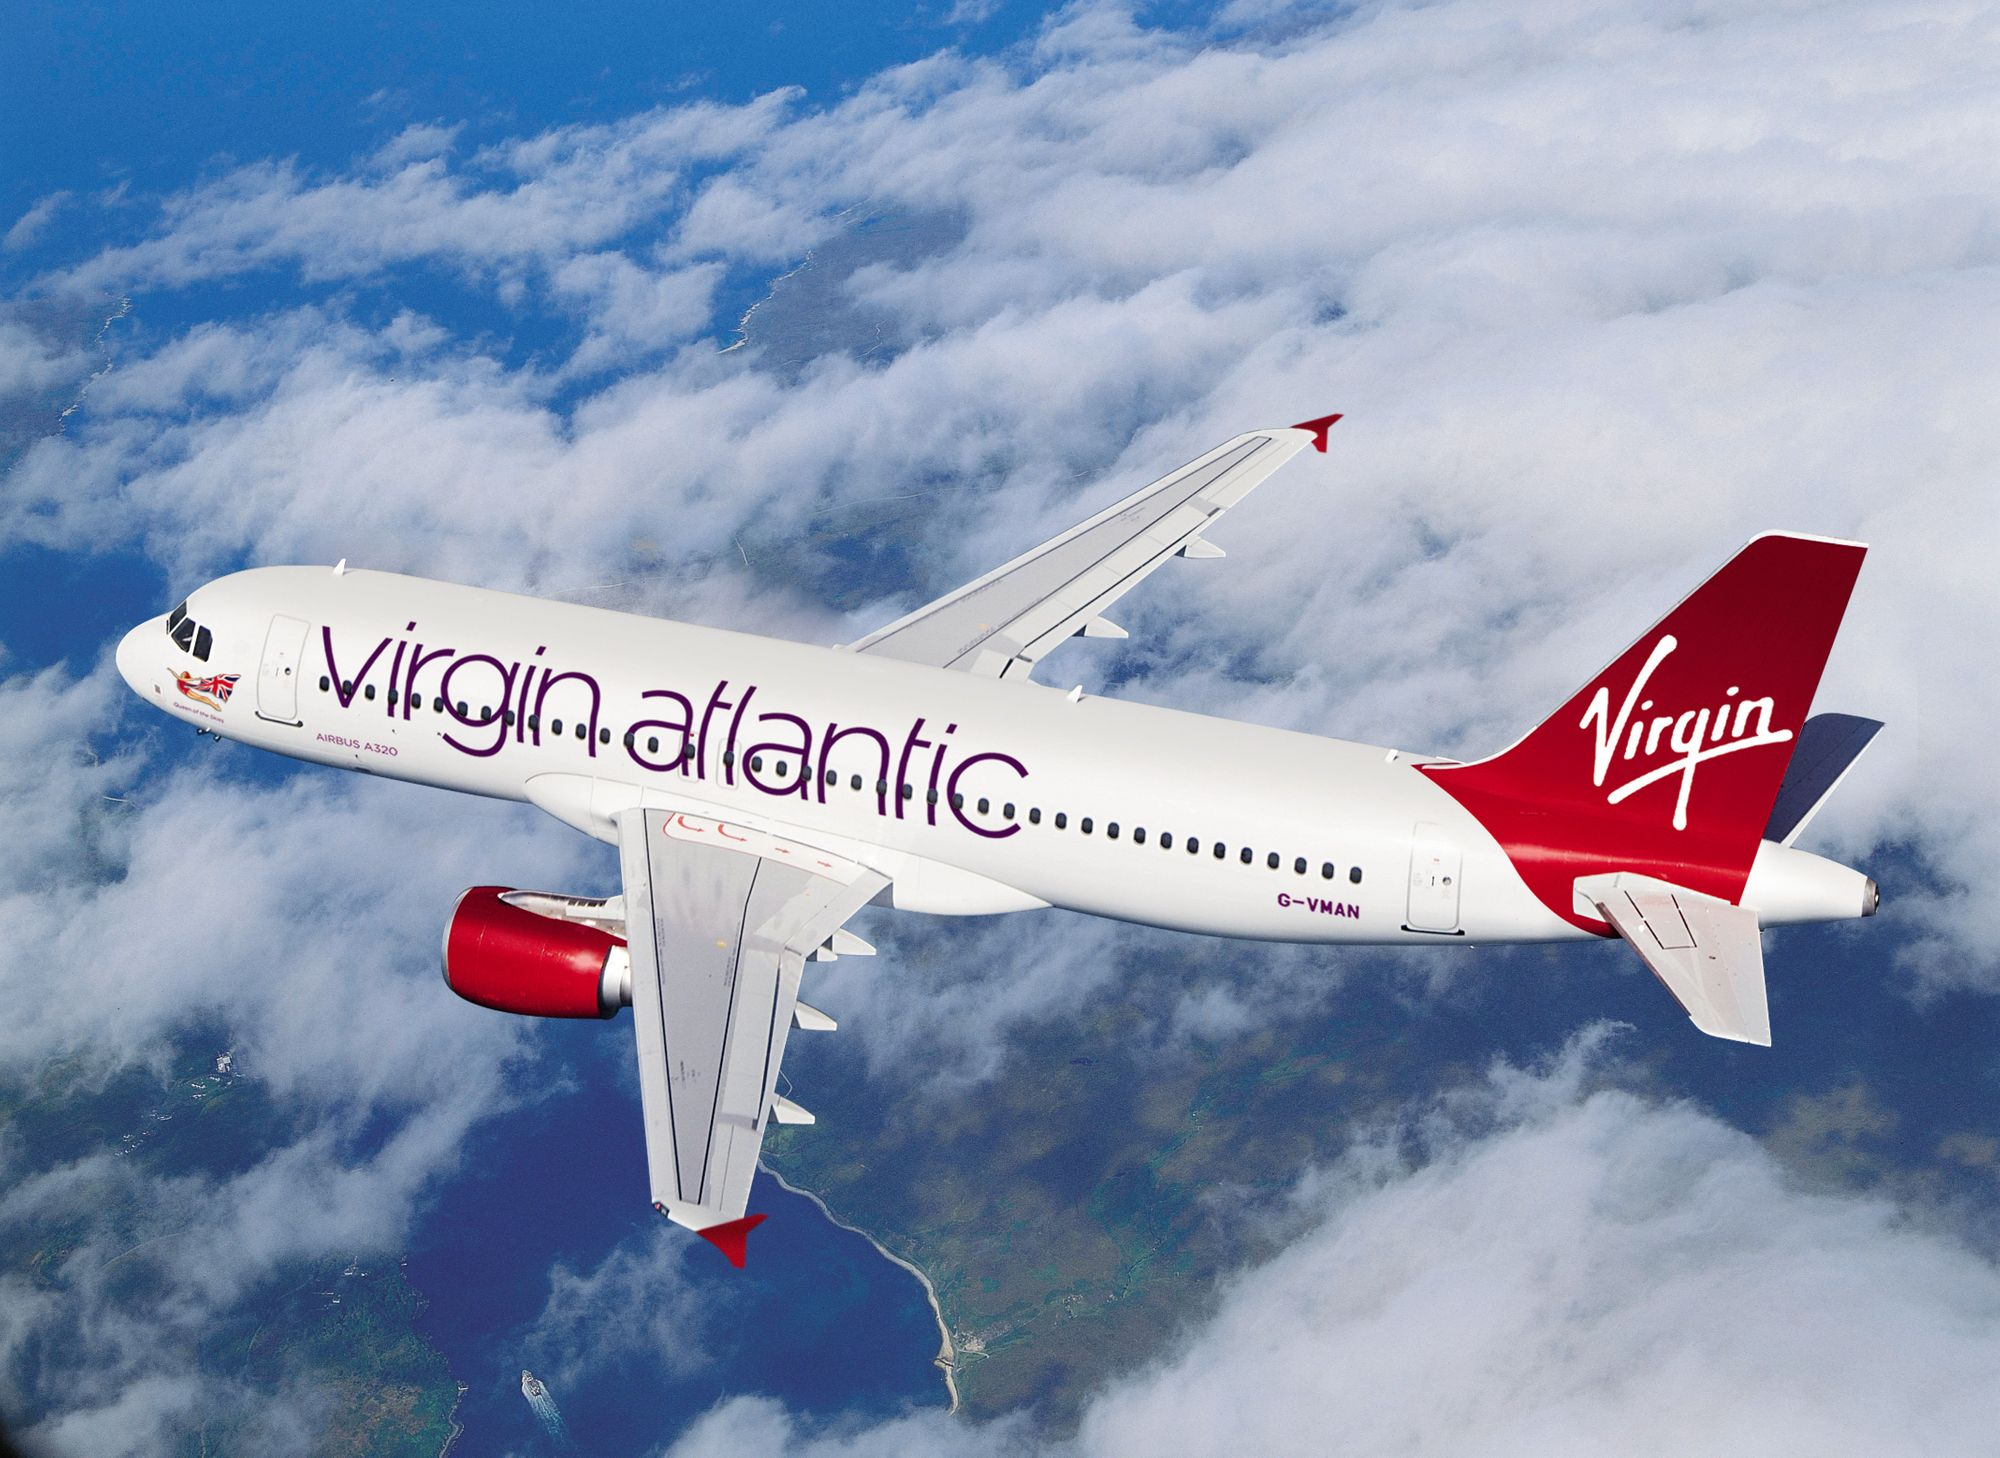 The trouble with Virgin Atlantic is?